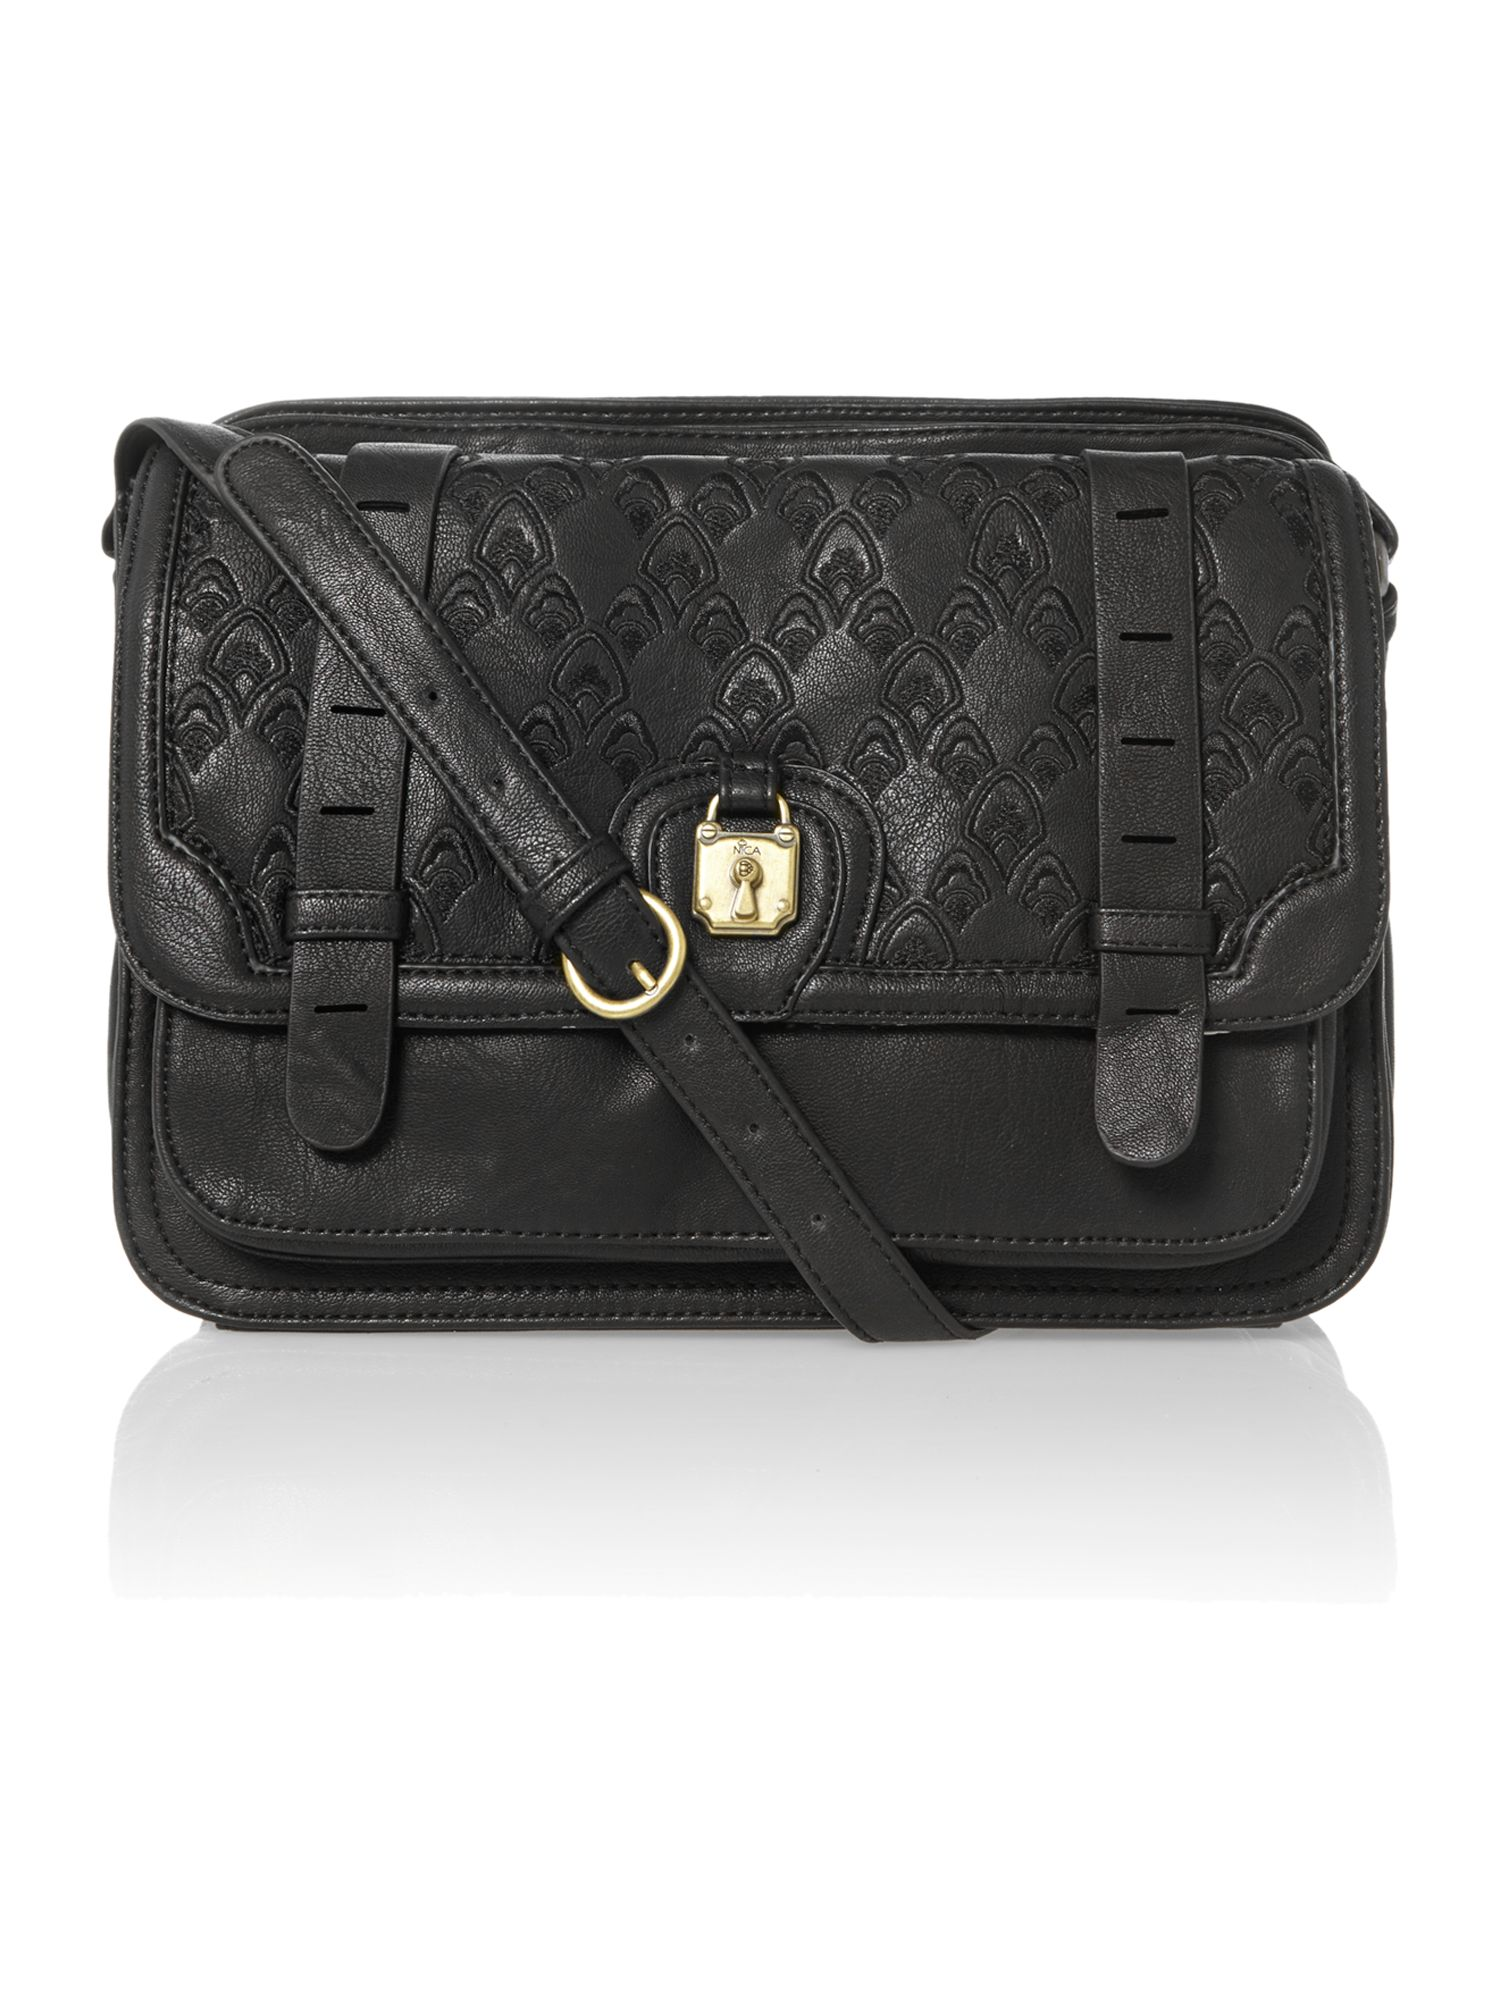 Bettina black large cross body bag